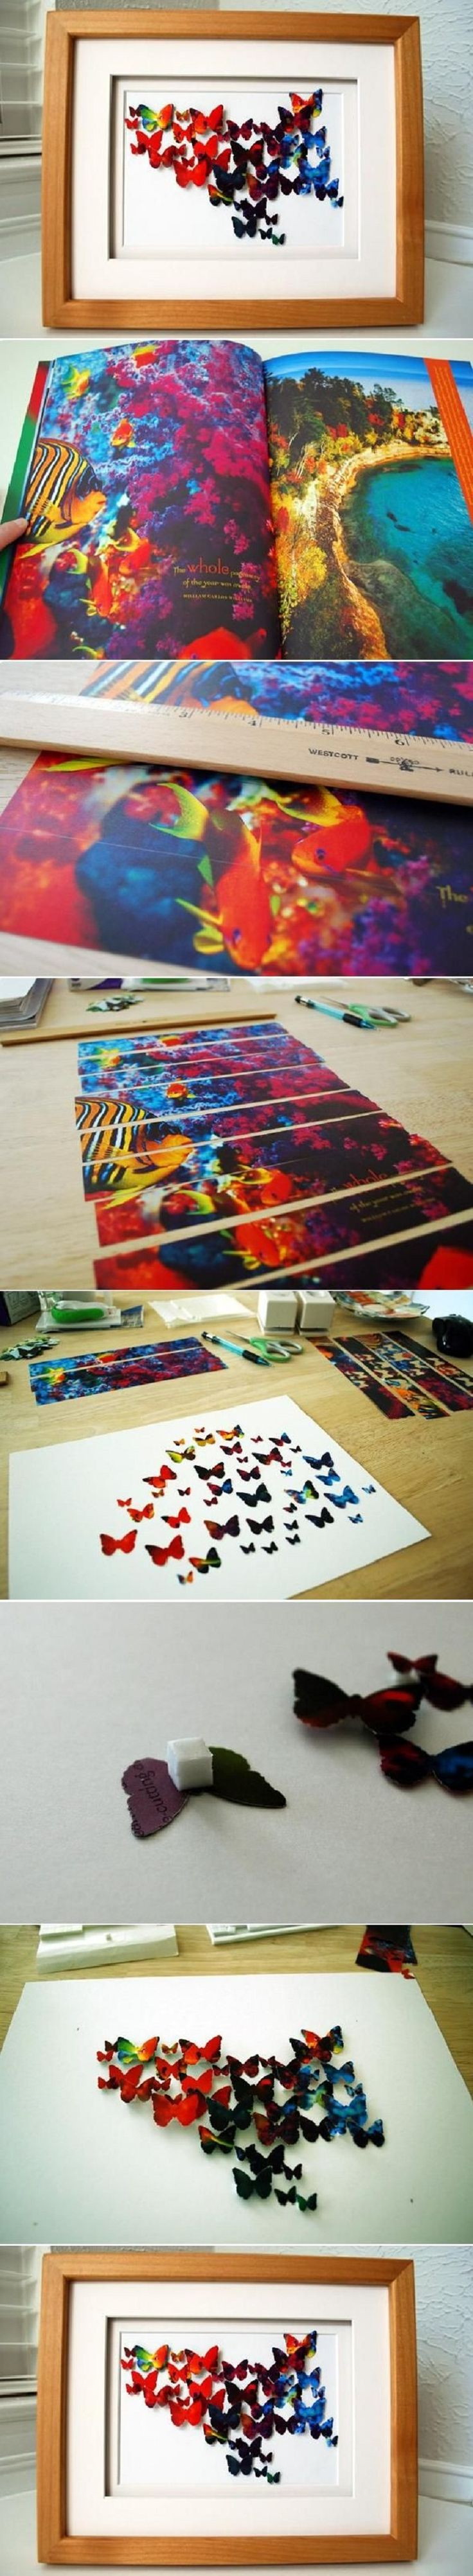 Diy Art 500 Best Art To Do For Those Of Us That Arent Good Artists Images